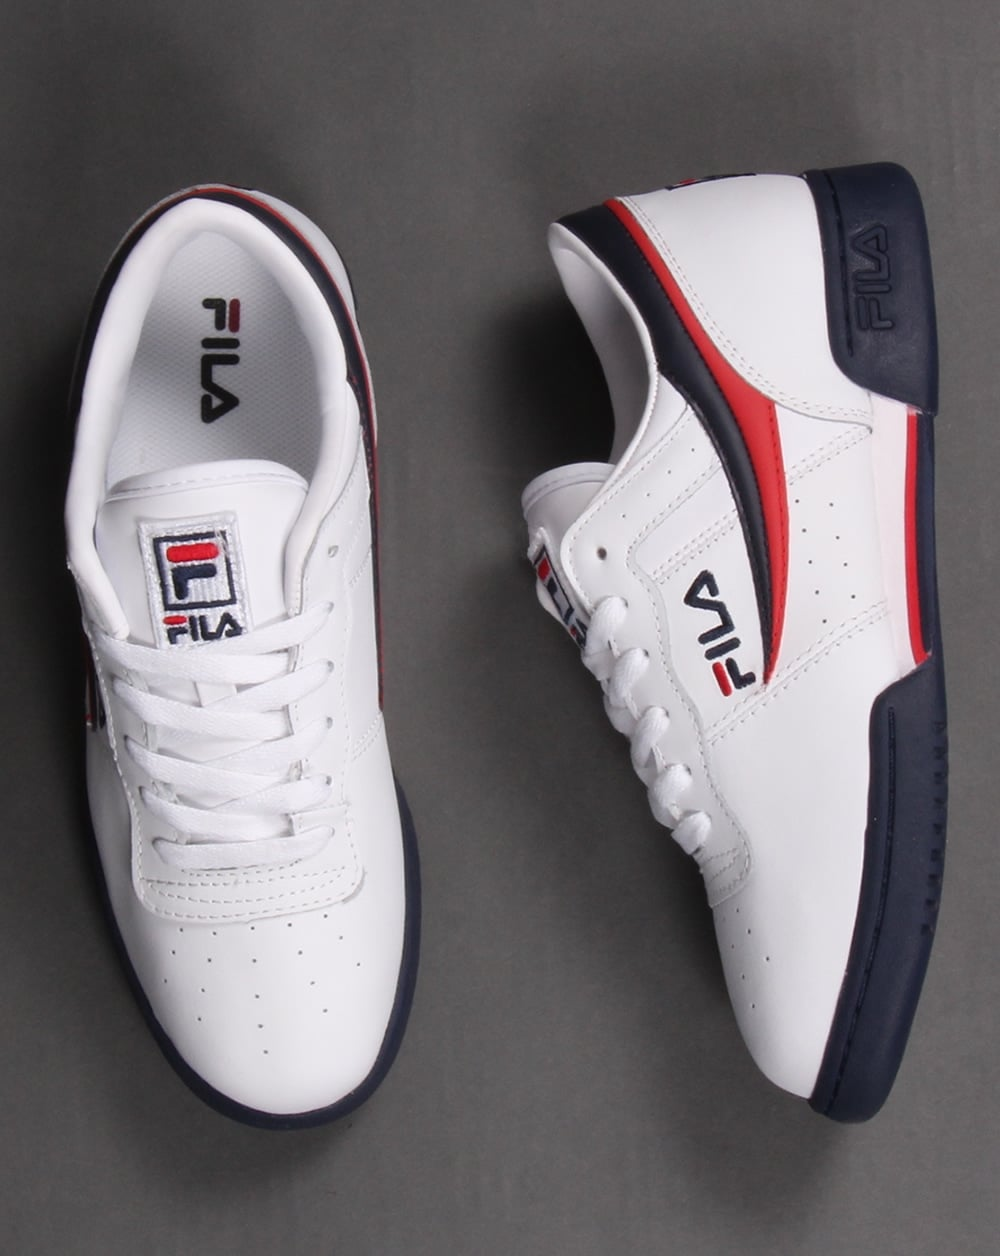 Fila Vintage Original Fitness Trainers White  Navy  Red